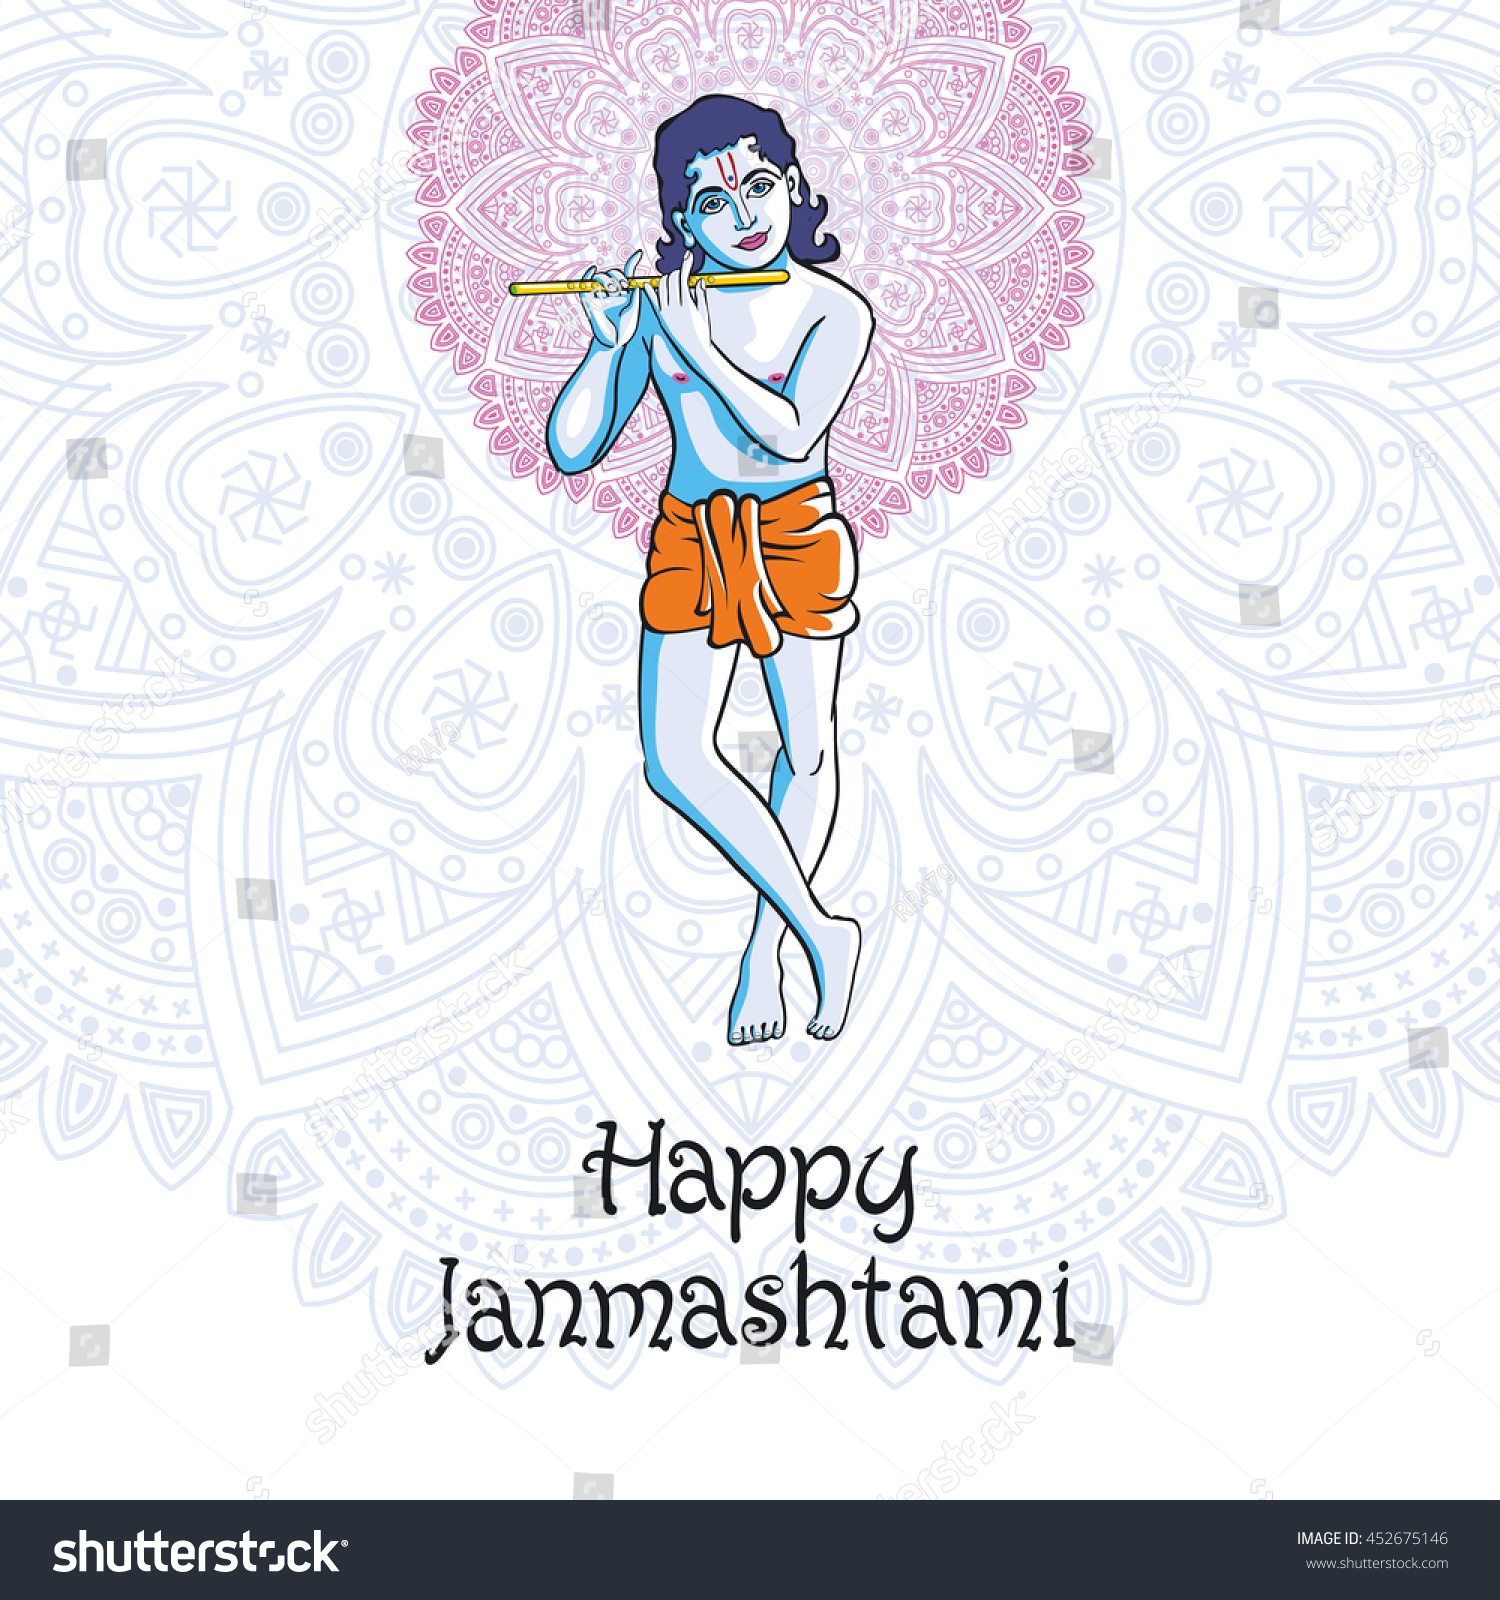 Hindu young god Lord Krishna Happy janmashtami art